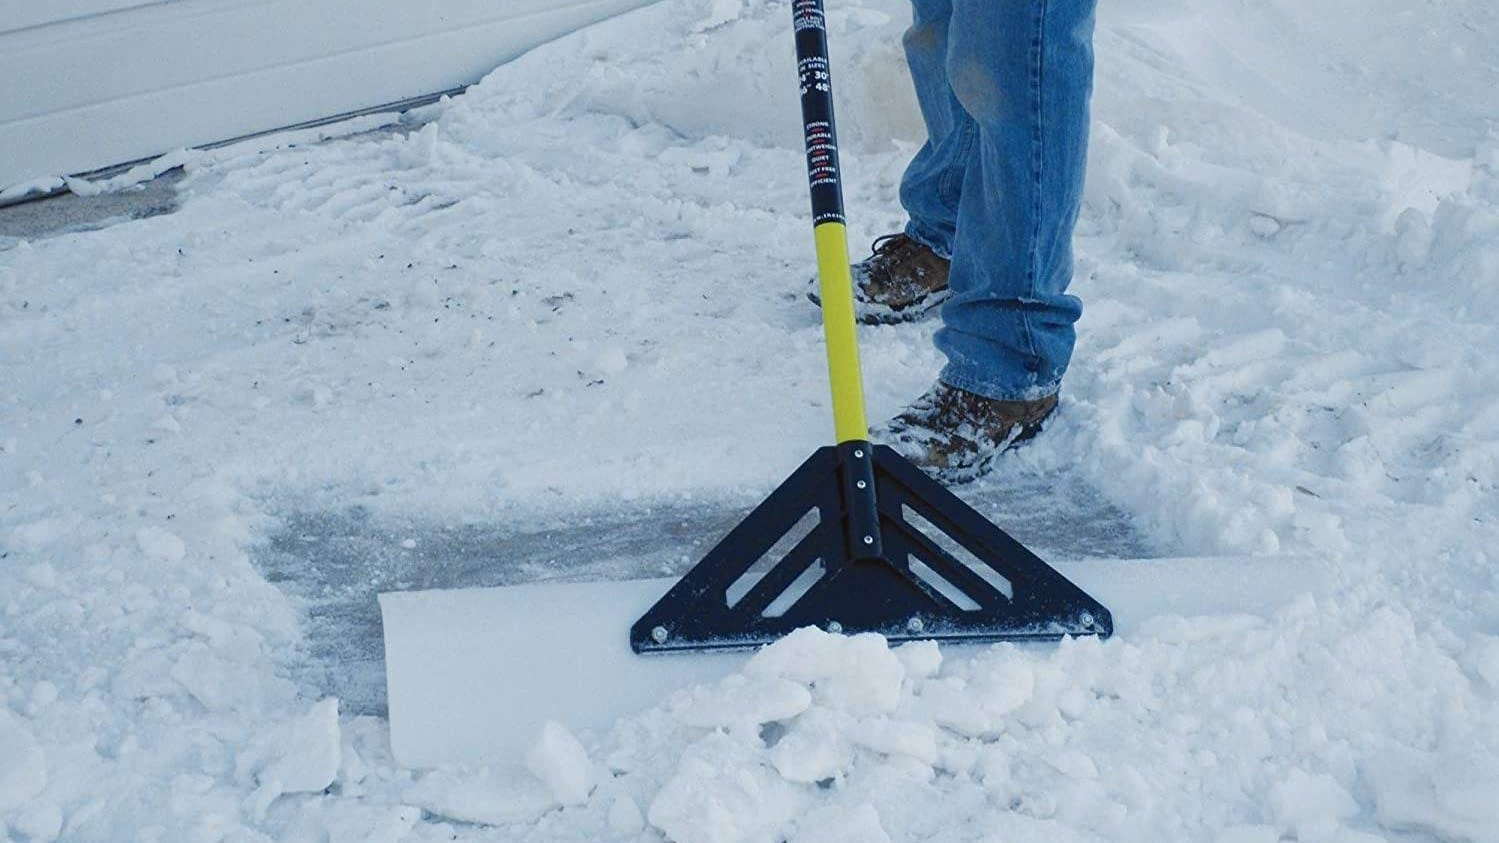 Snowplow shovel being used to clear snow.